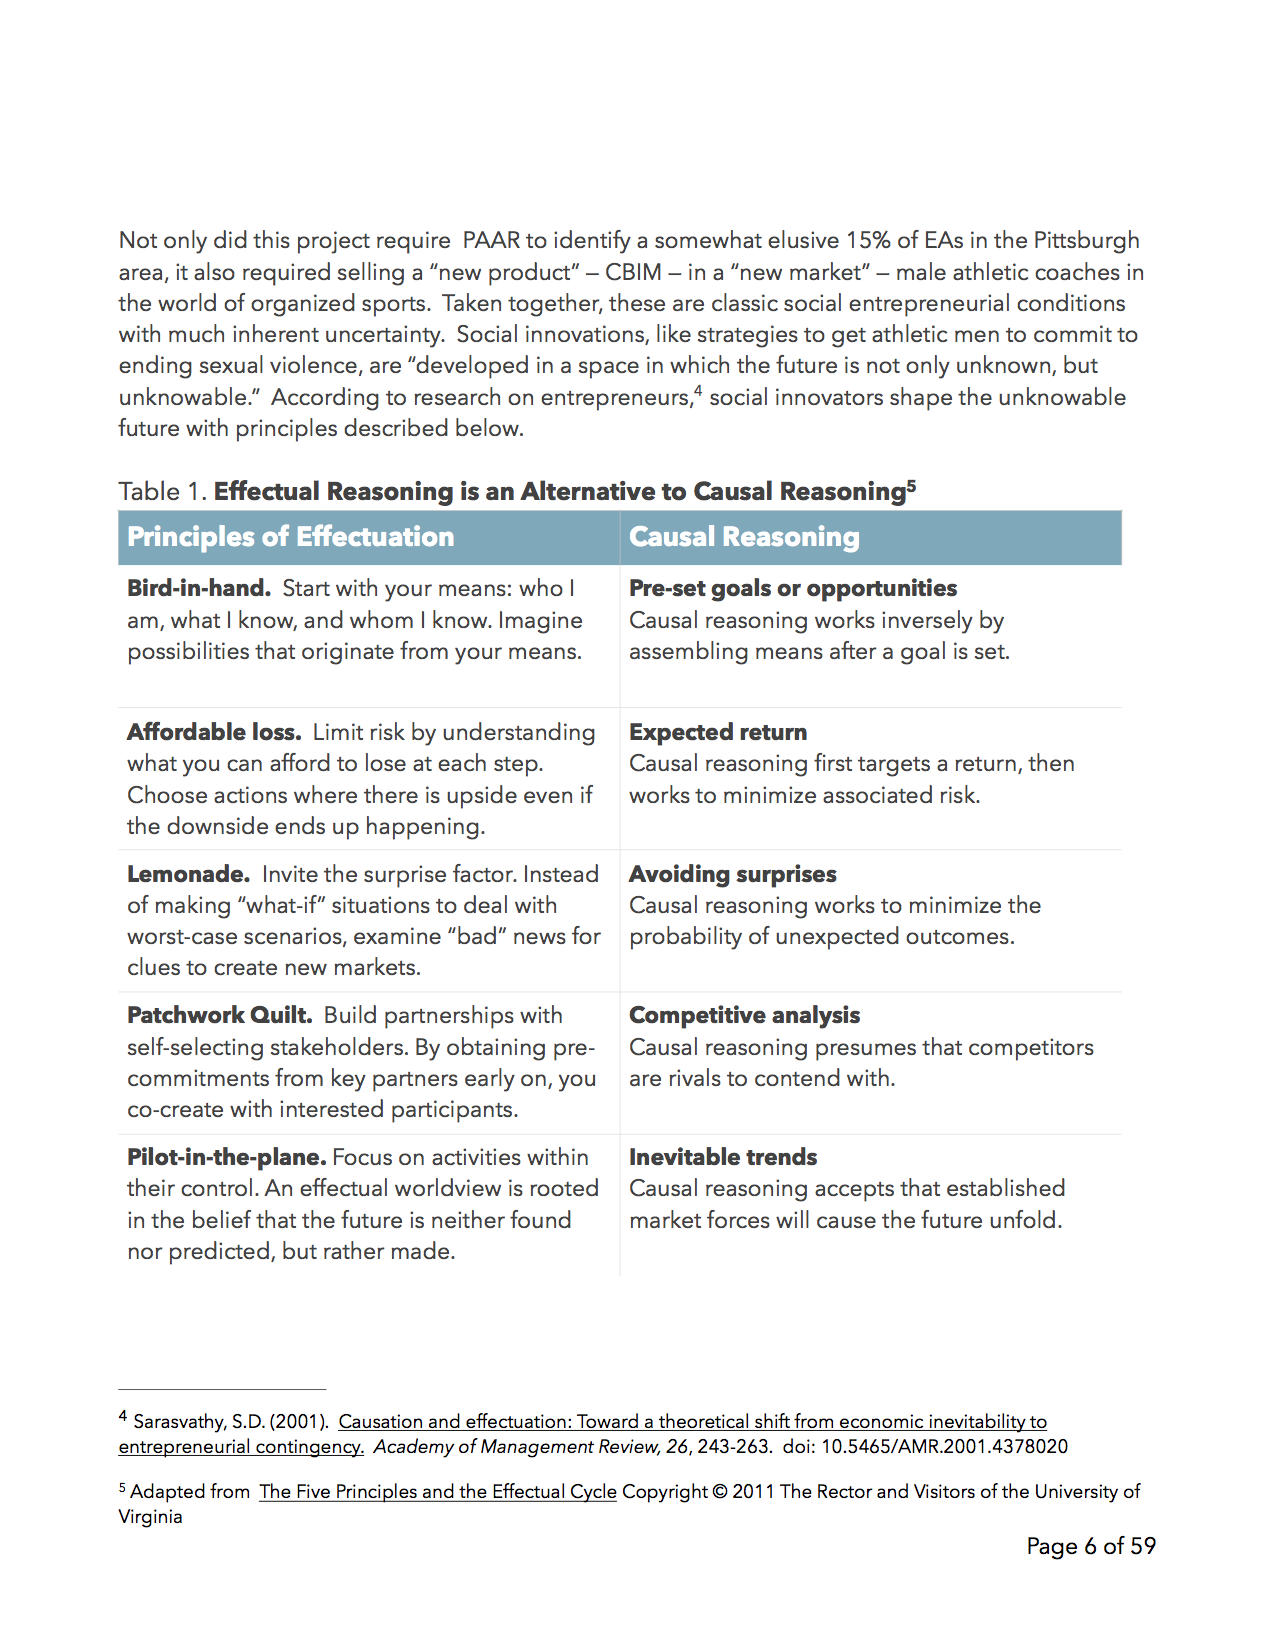 On Page 6 of the CBIM report, the five effectual principles are contrasted with more traditional causal thinking. Causal thinking undergirds traditional program development, management, and many forms of goal-based evaluation.